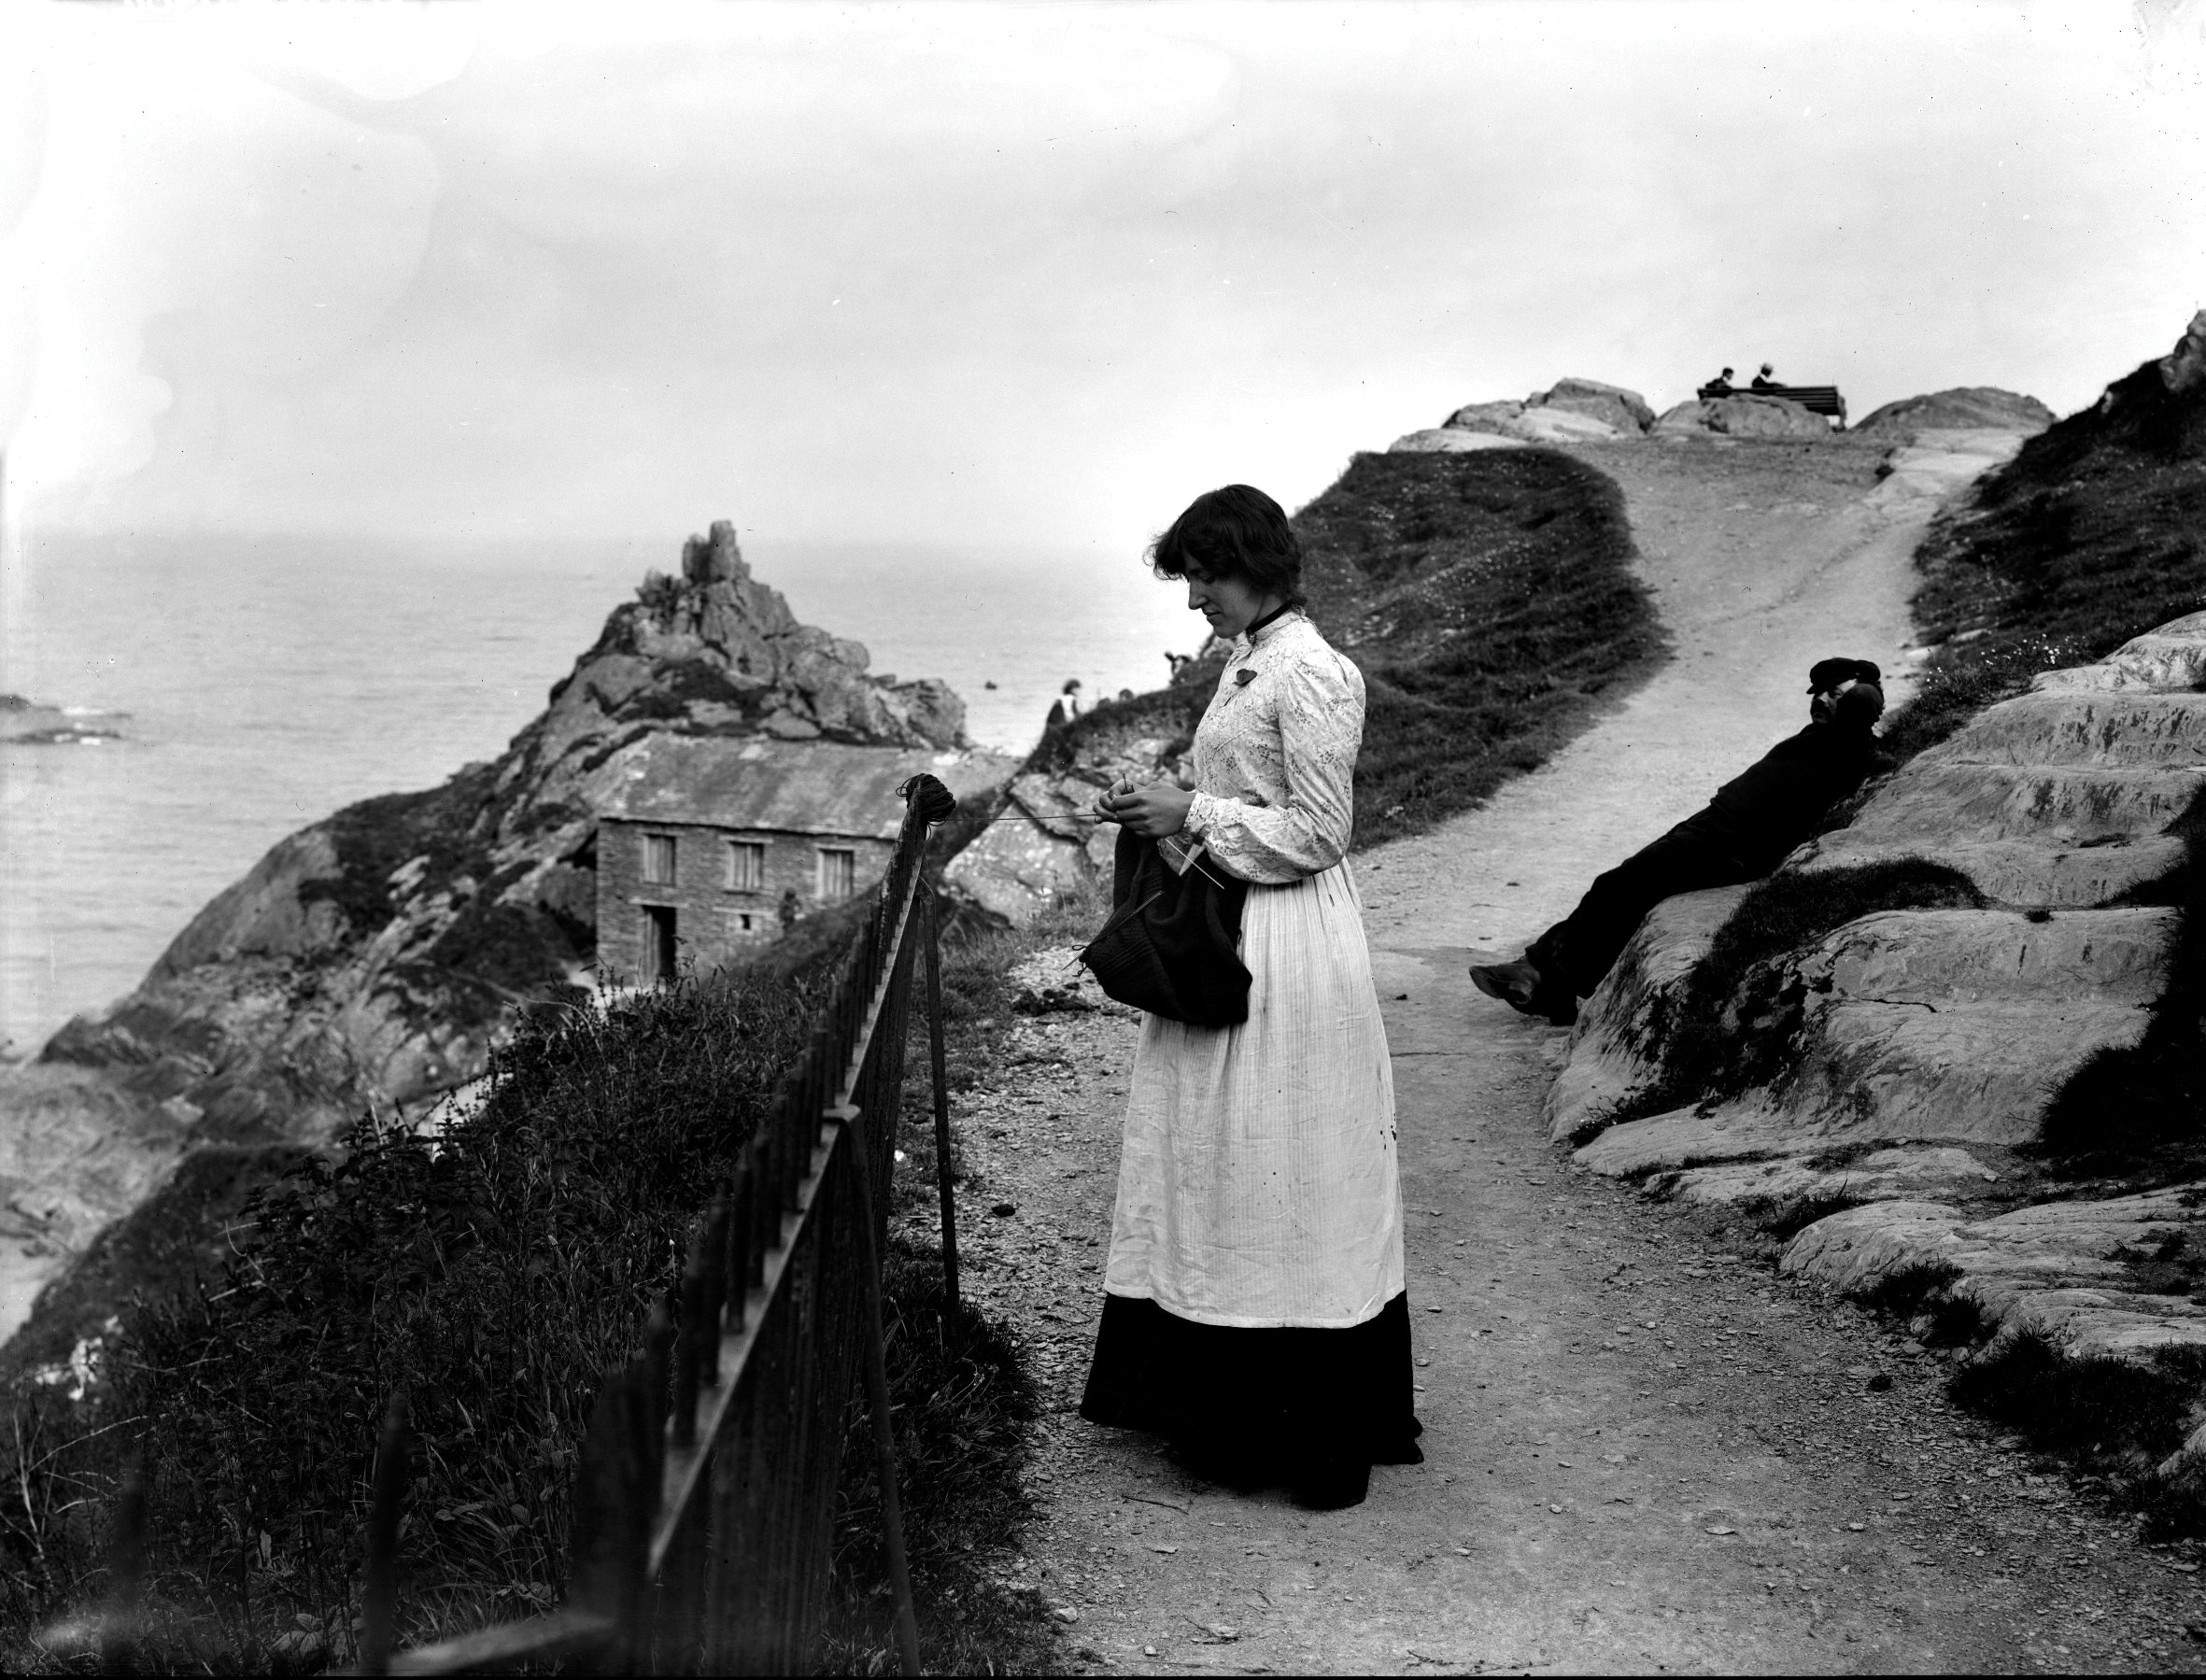 A history of knitting in Cornwall - Cornish knit-frocks and ...